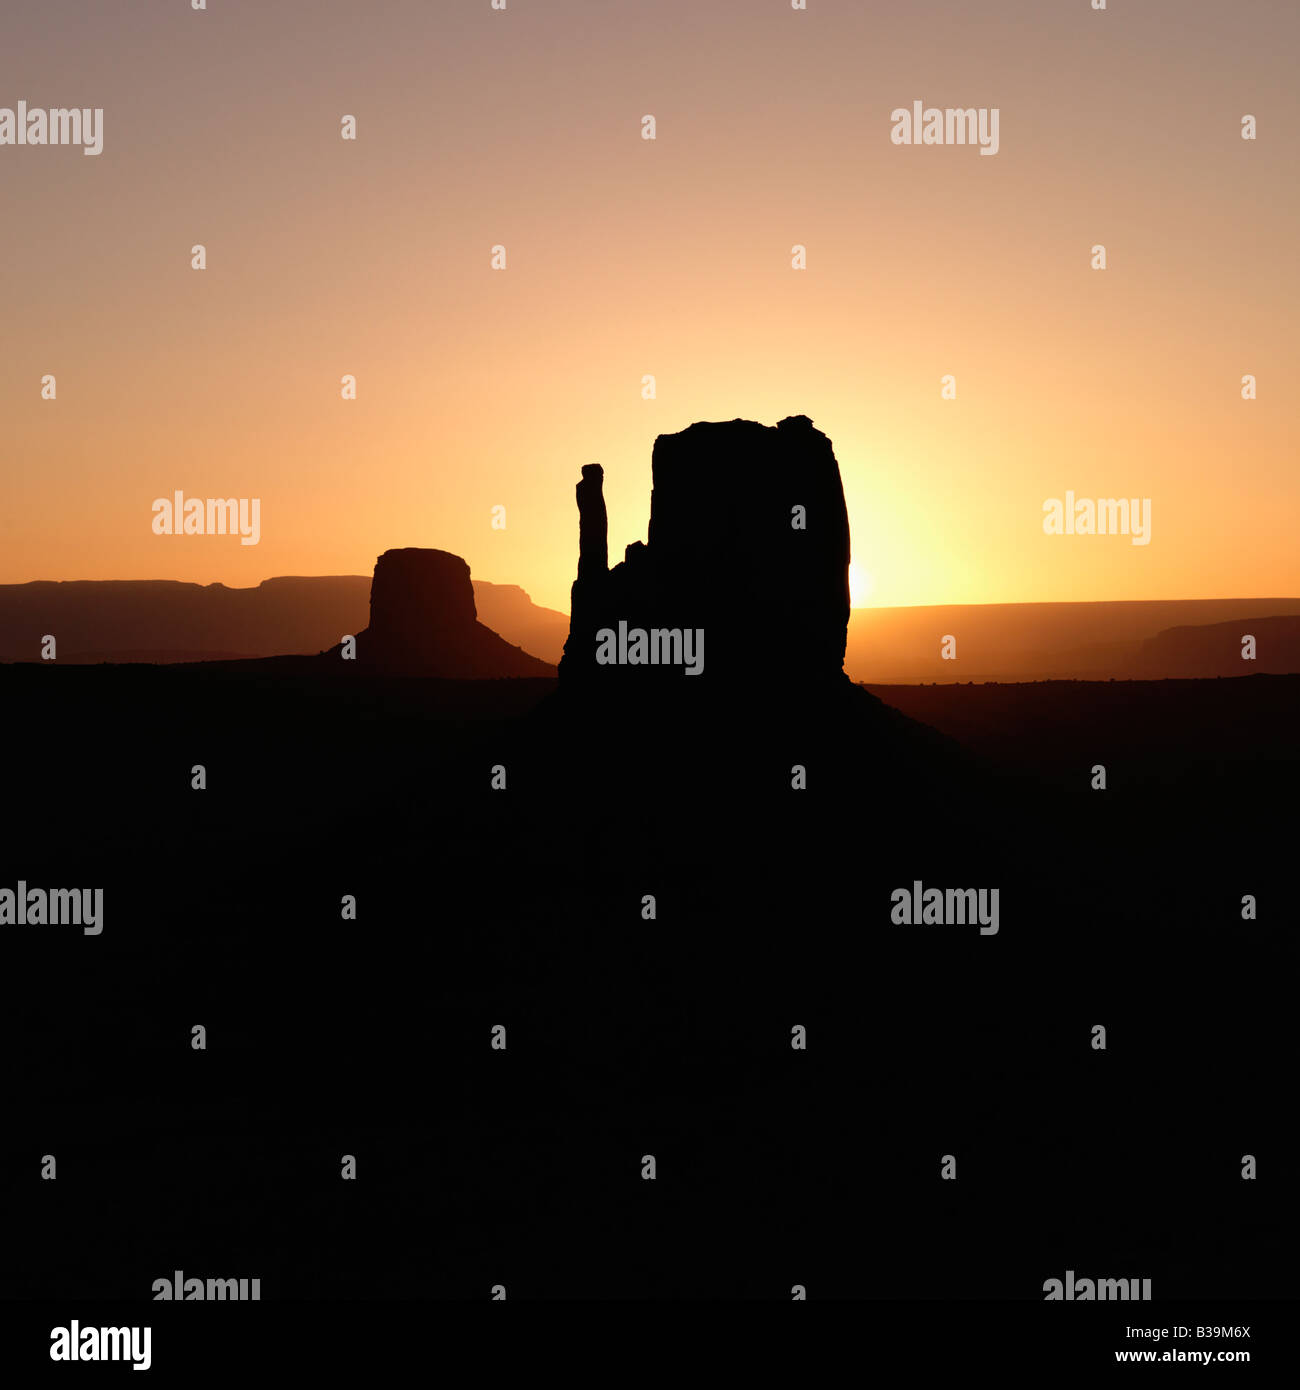 Scenic sunset landscape of mesas in Monument Valley near the border of Arizona and Utah United States - Stock Image